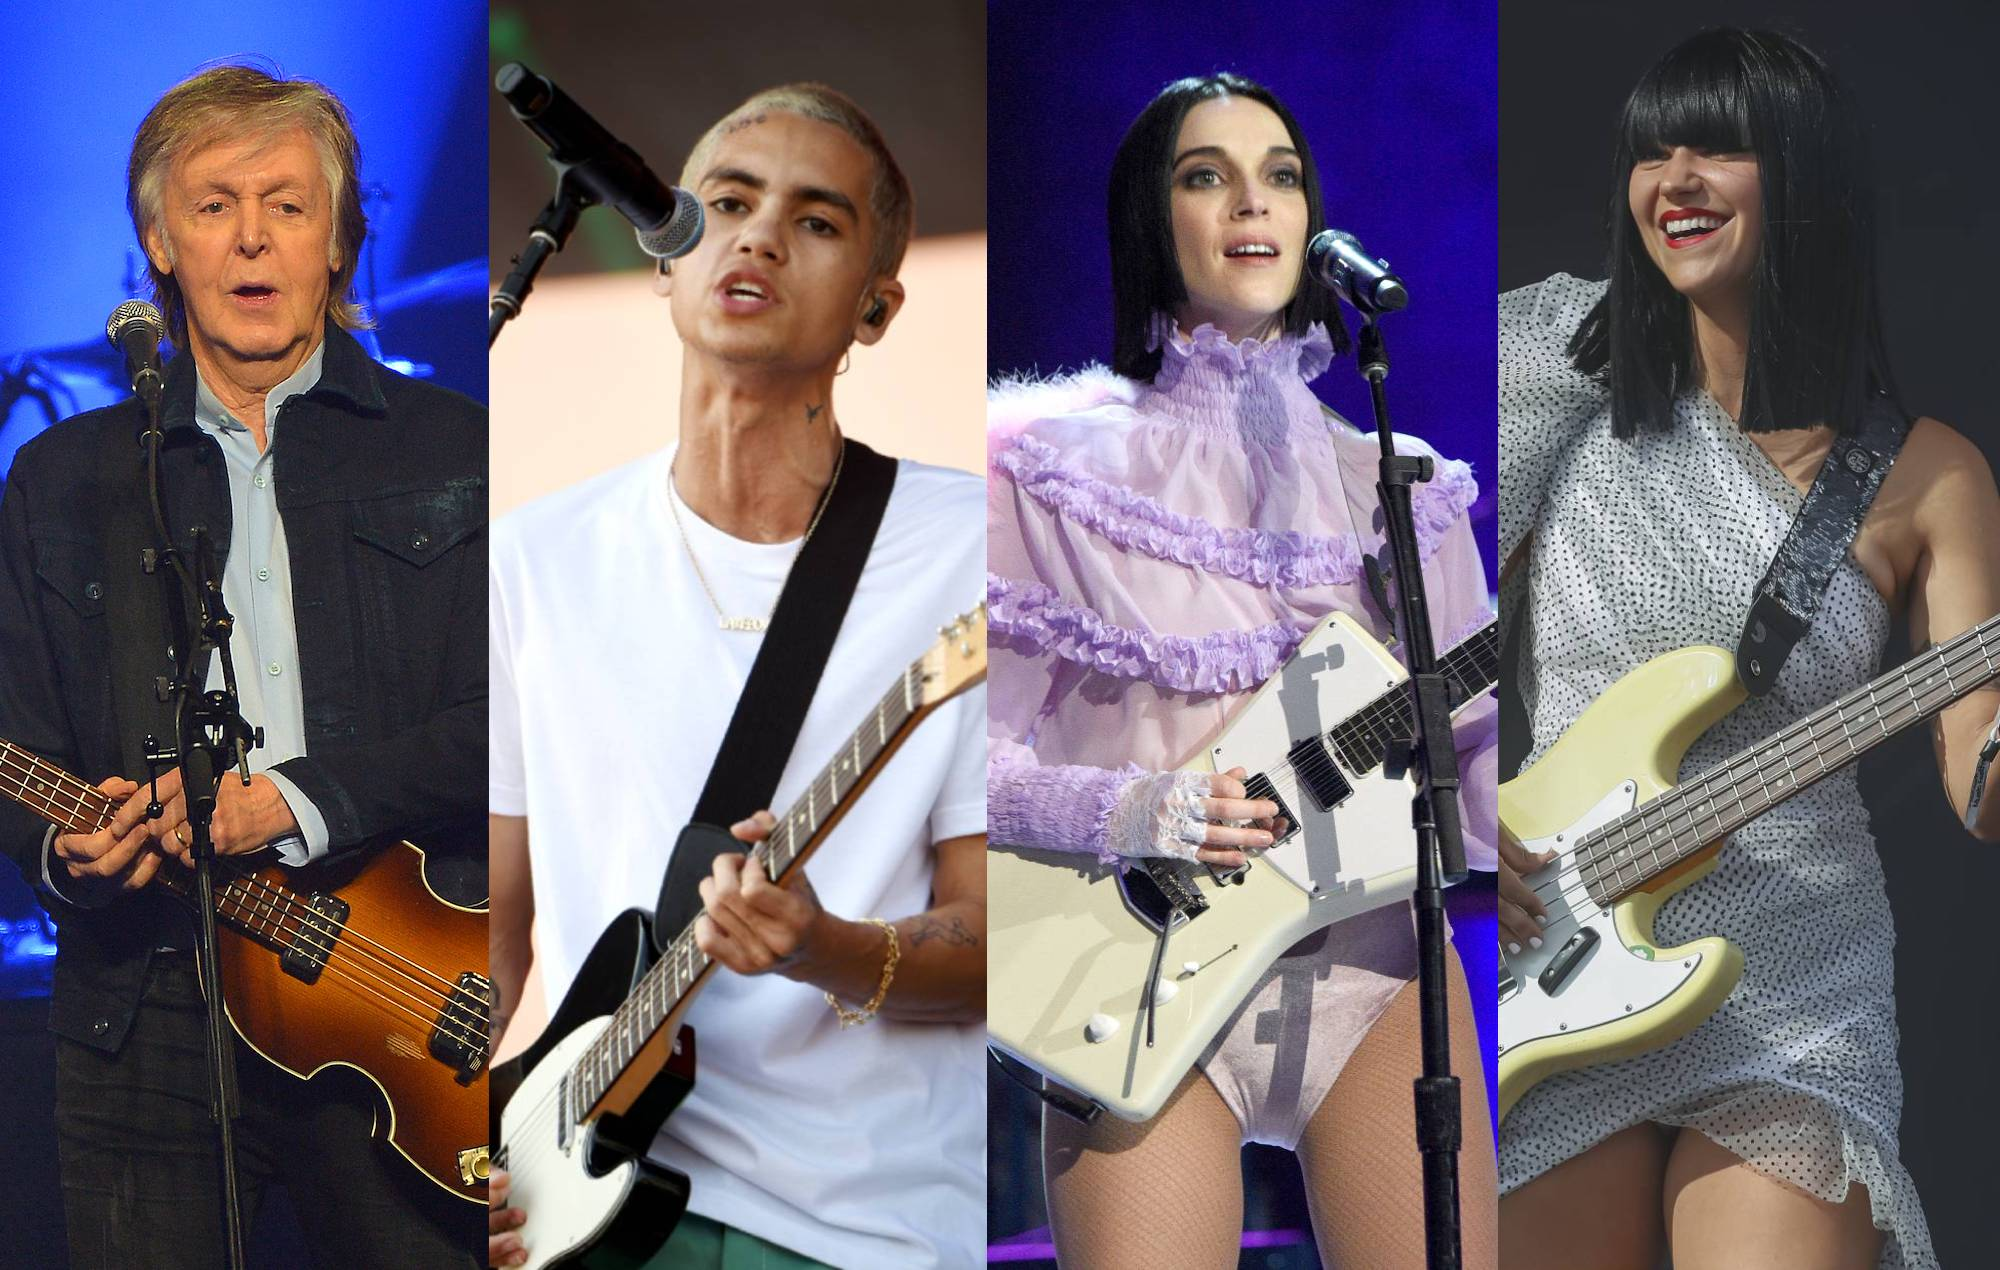 Paul McCartney has been listening to Dominic Fike, St Vincent and Khruangbin